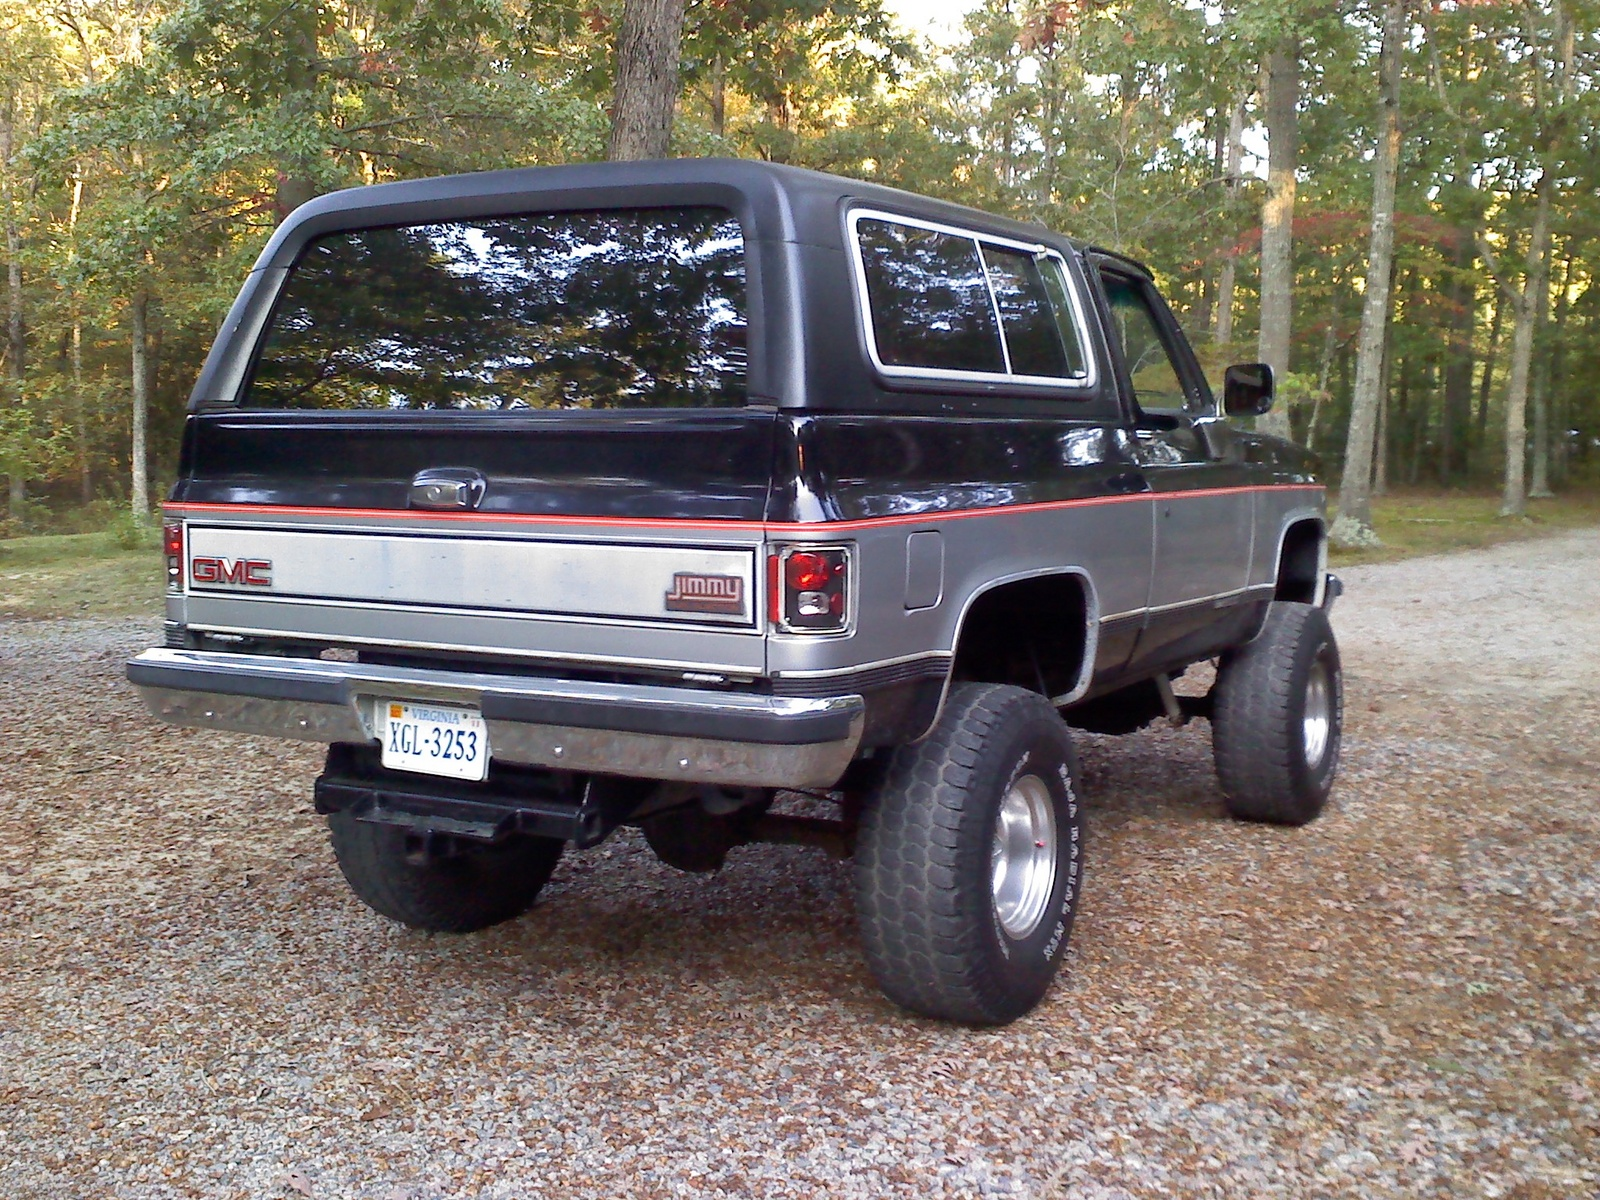 1983 gmc jimmy - pictures